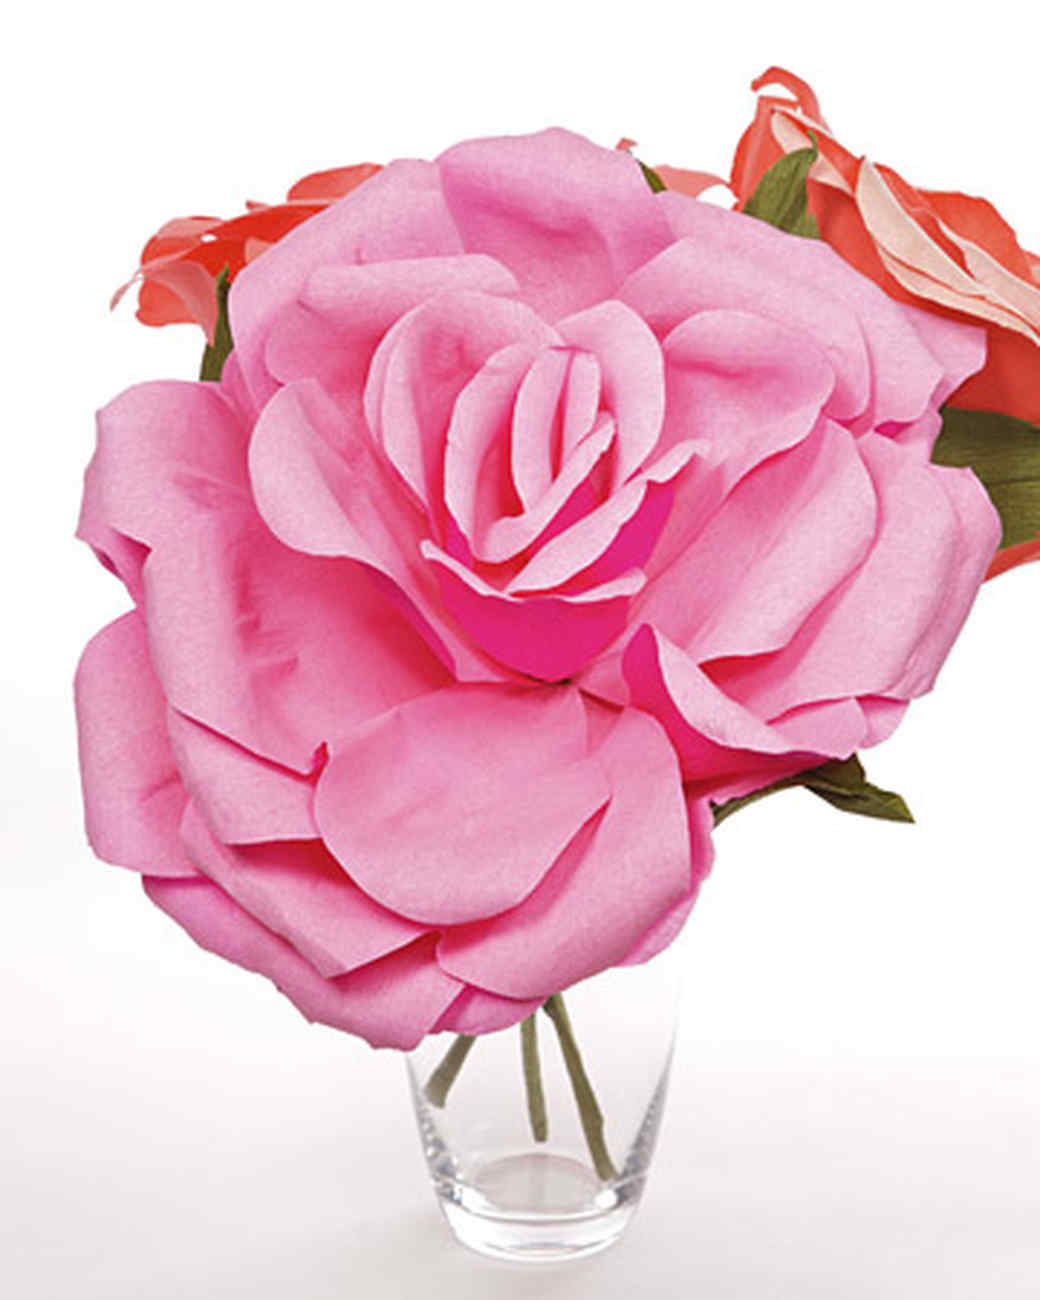 Crepe paper roses video martha stewart crepe paper roses these large crepe paper flowers mightylinksfo Images